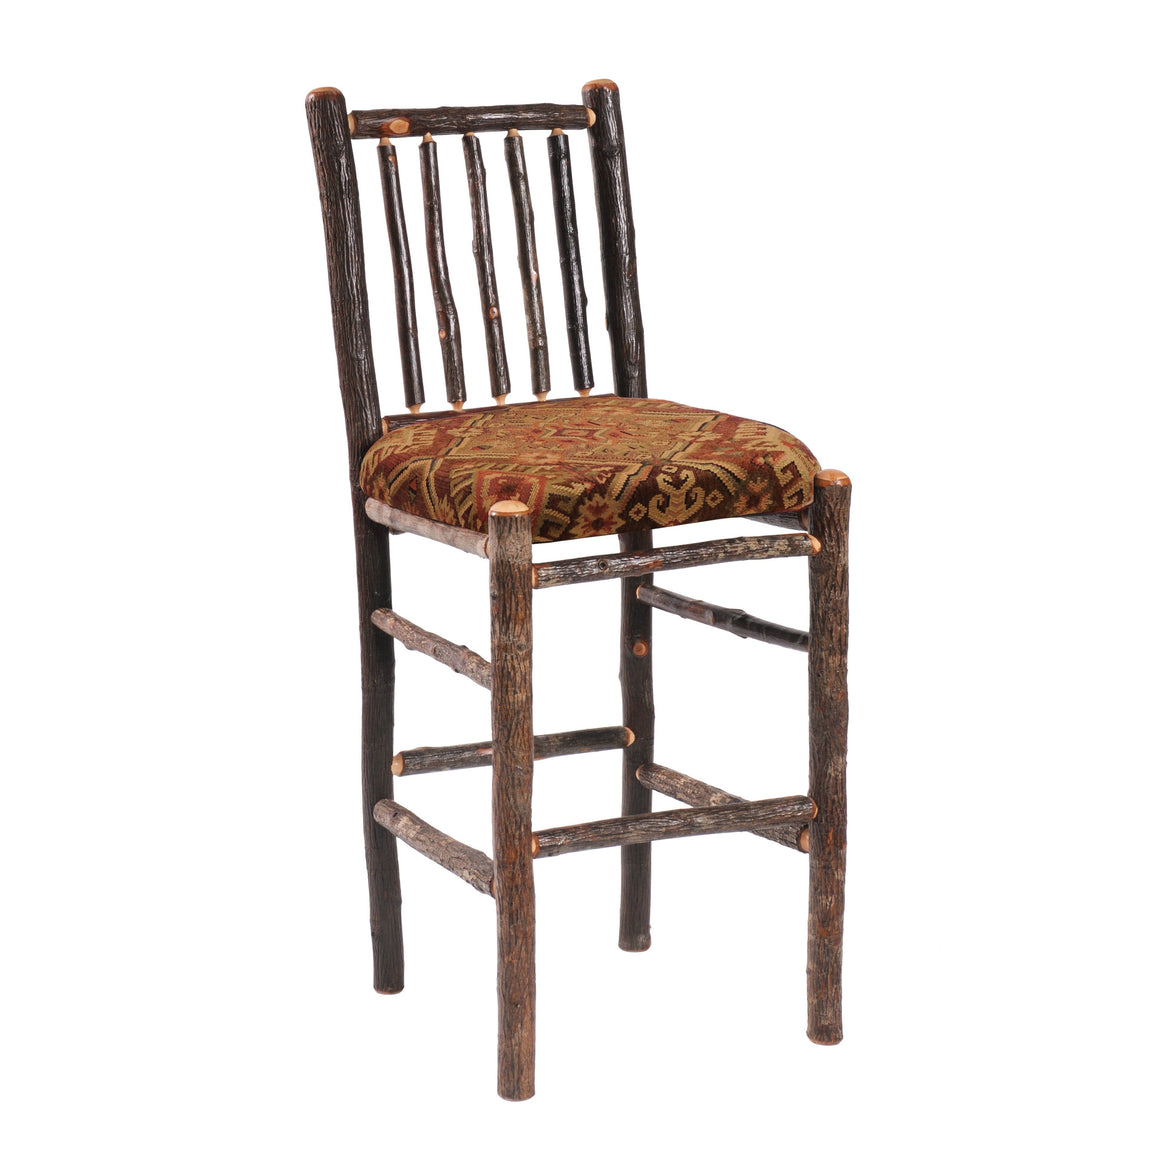 "Natural Hickory Log Bar stool - Upholstered Seat - 30"" high-Rustic Deco Incorporated"